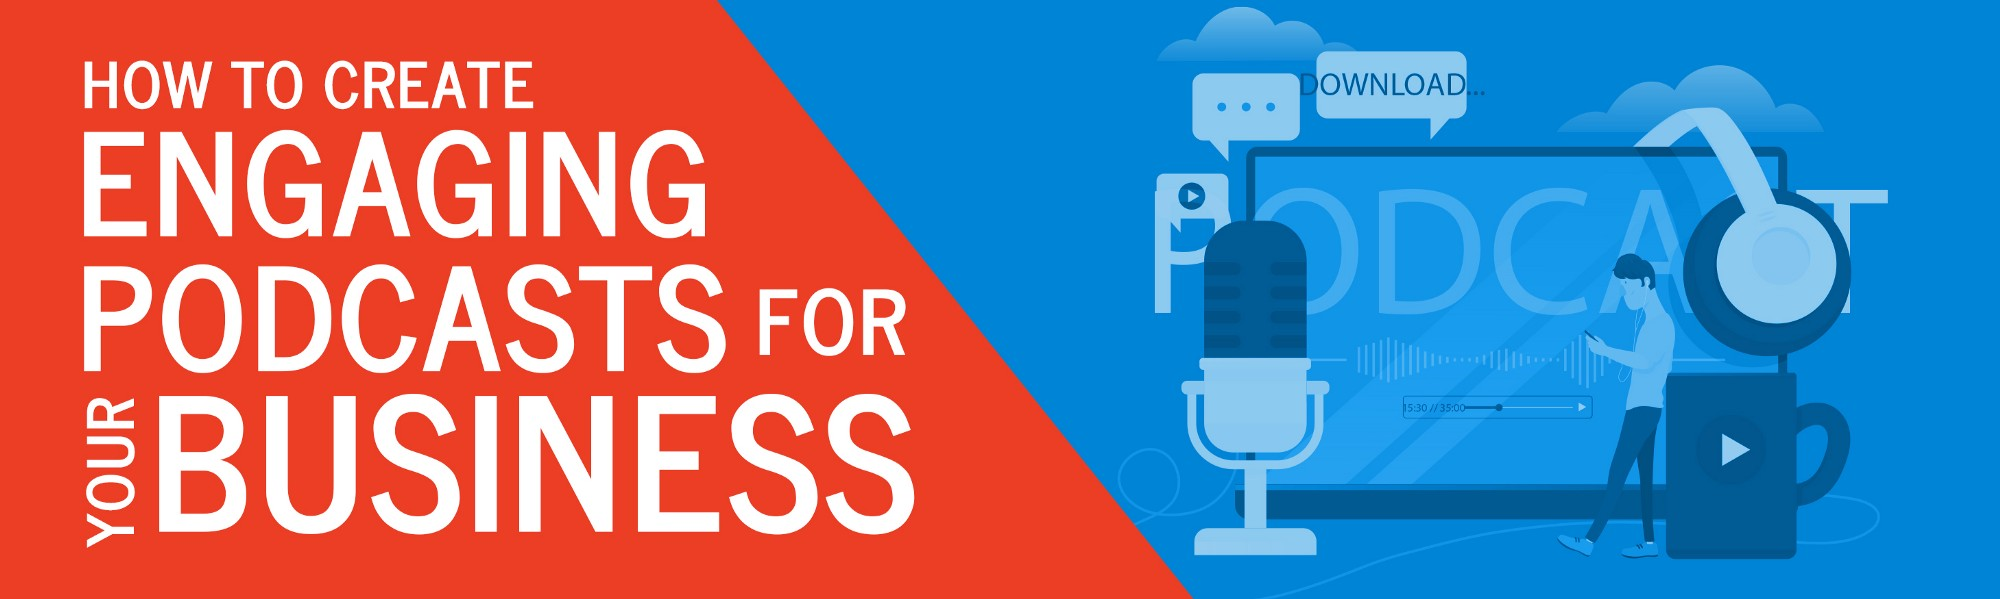 How to Create Engaging Podcasts for Your Business